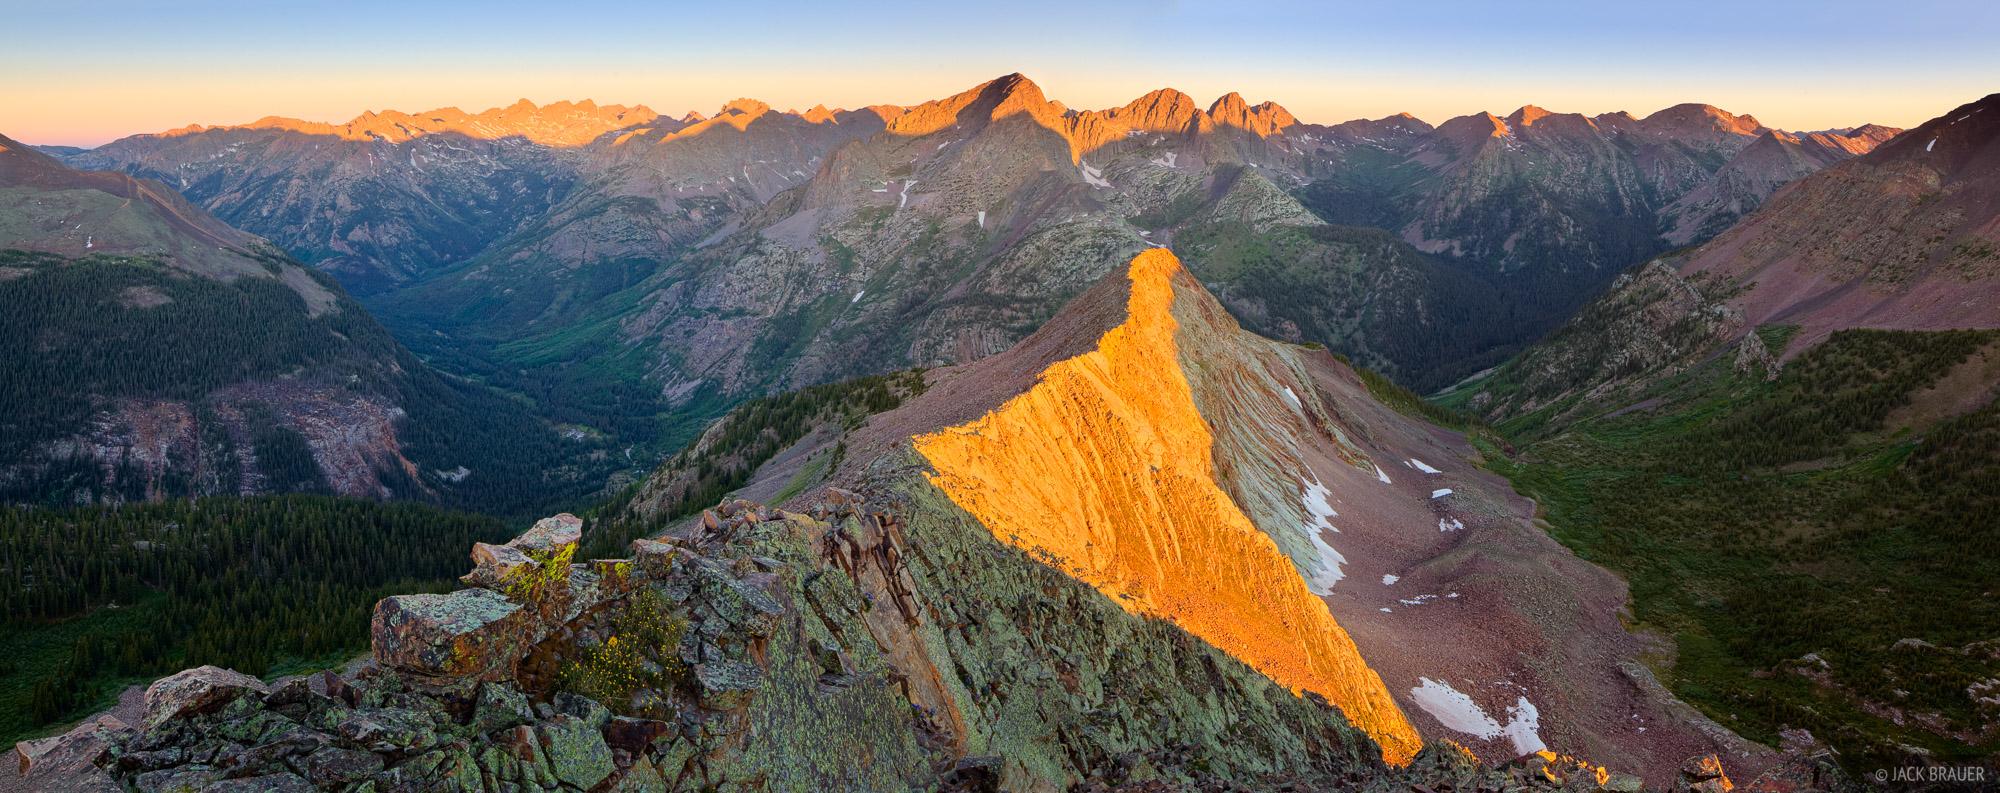 Needle Mountains, San Juan Mountains, Vallecito, Colorado, sunrise, panorama, photo